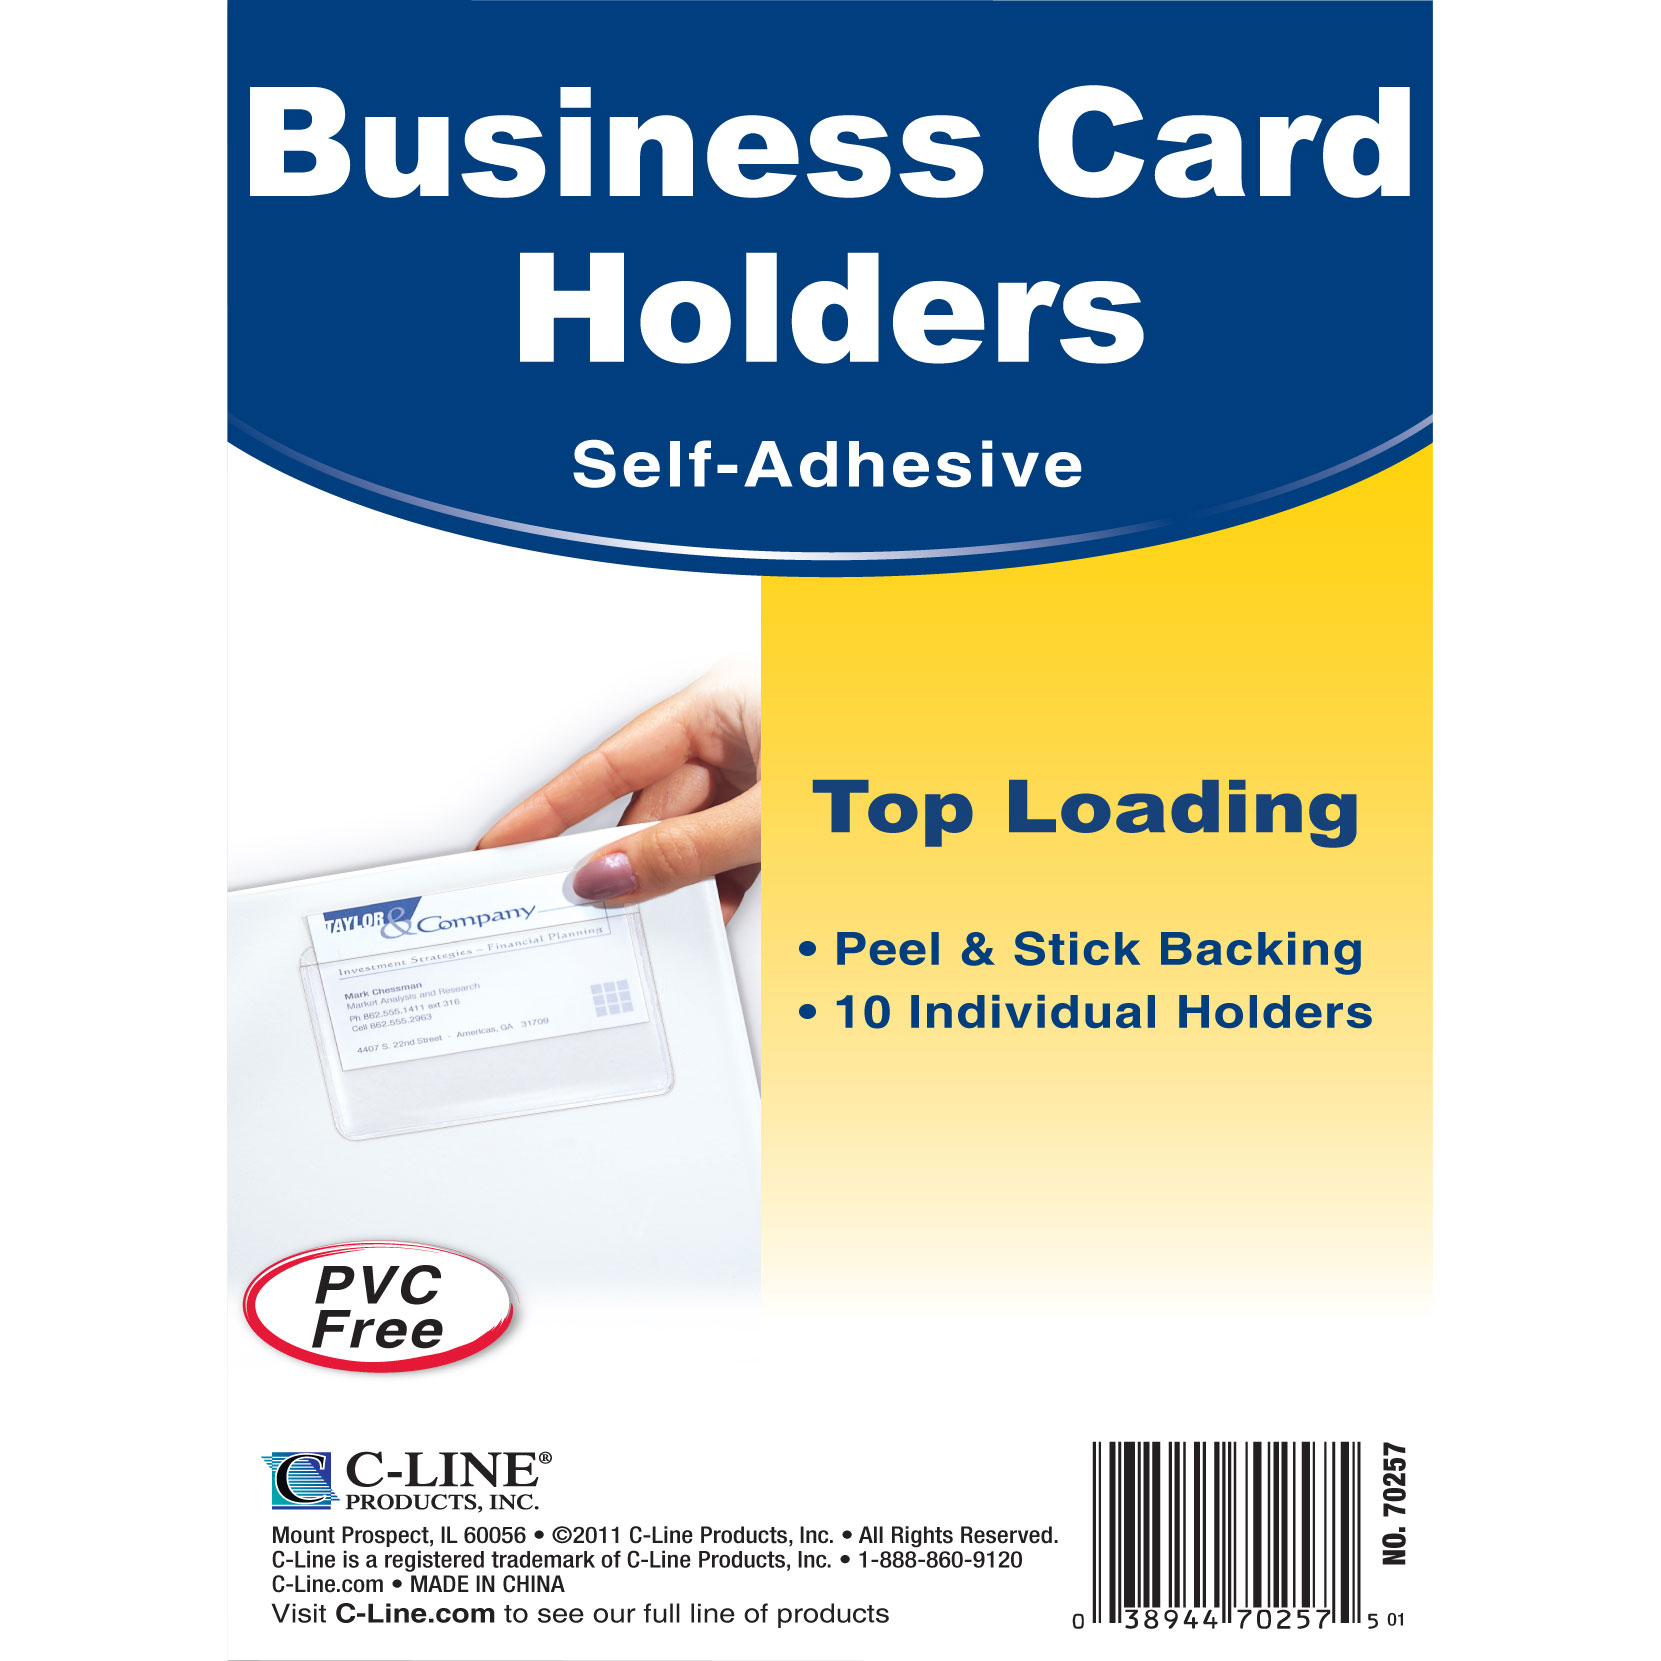 C-Line Self-Adhesive Top Load Business Card Holders - Walmart.com